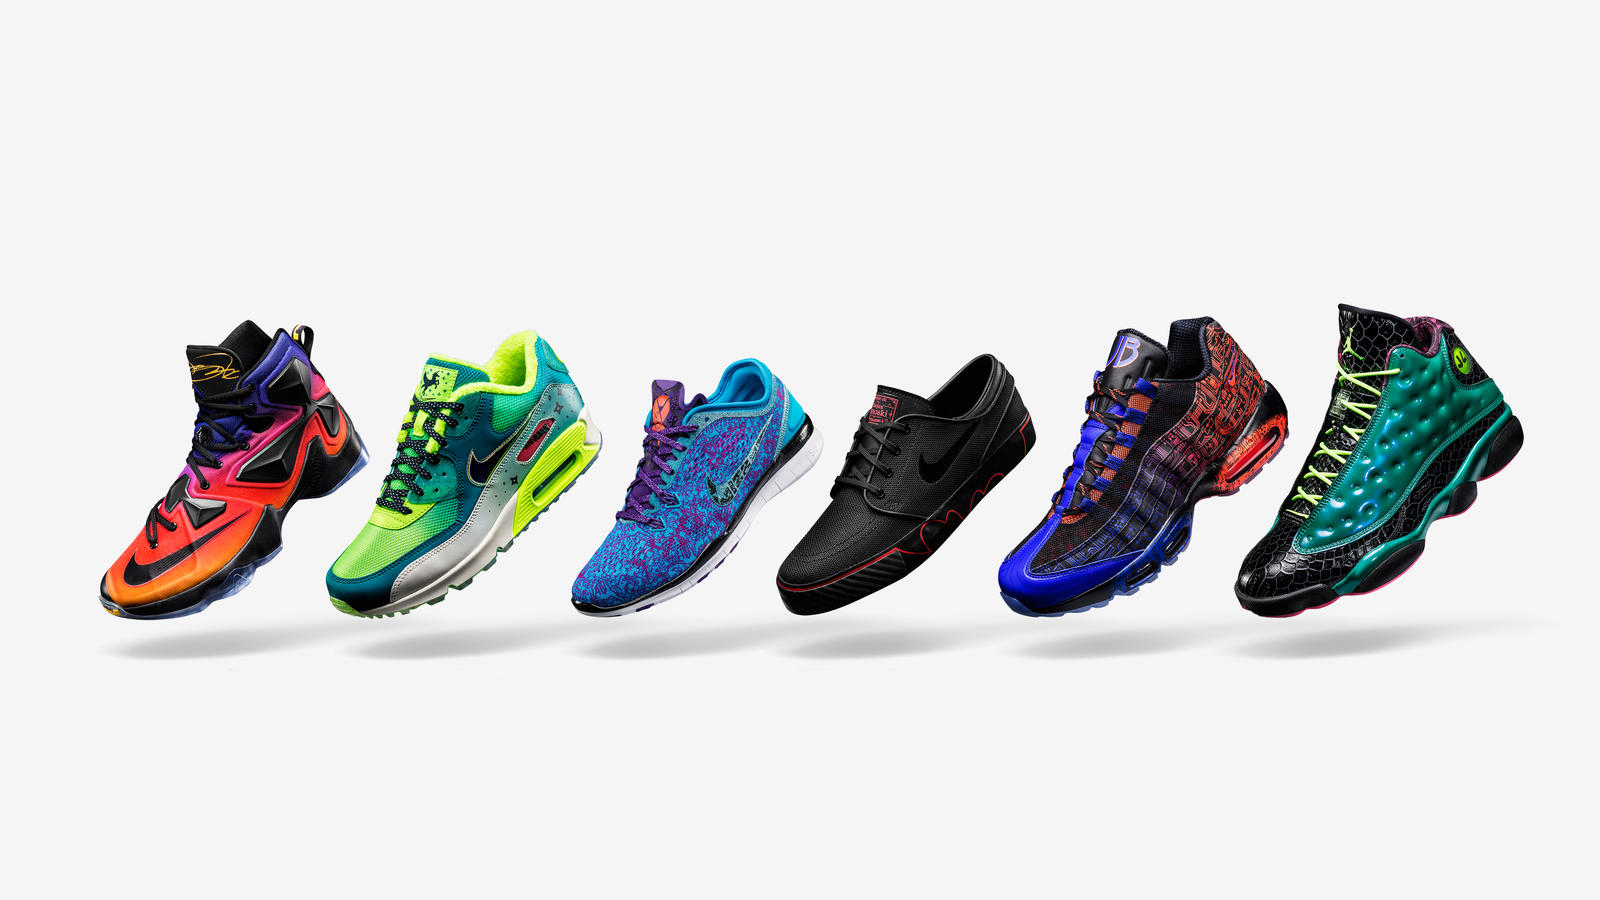 Nike_doernbecher-freestyle-collection_2015_footwear_group_hd_1600